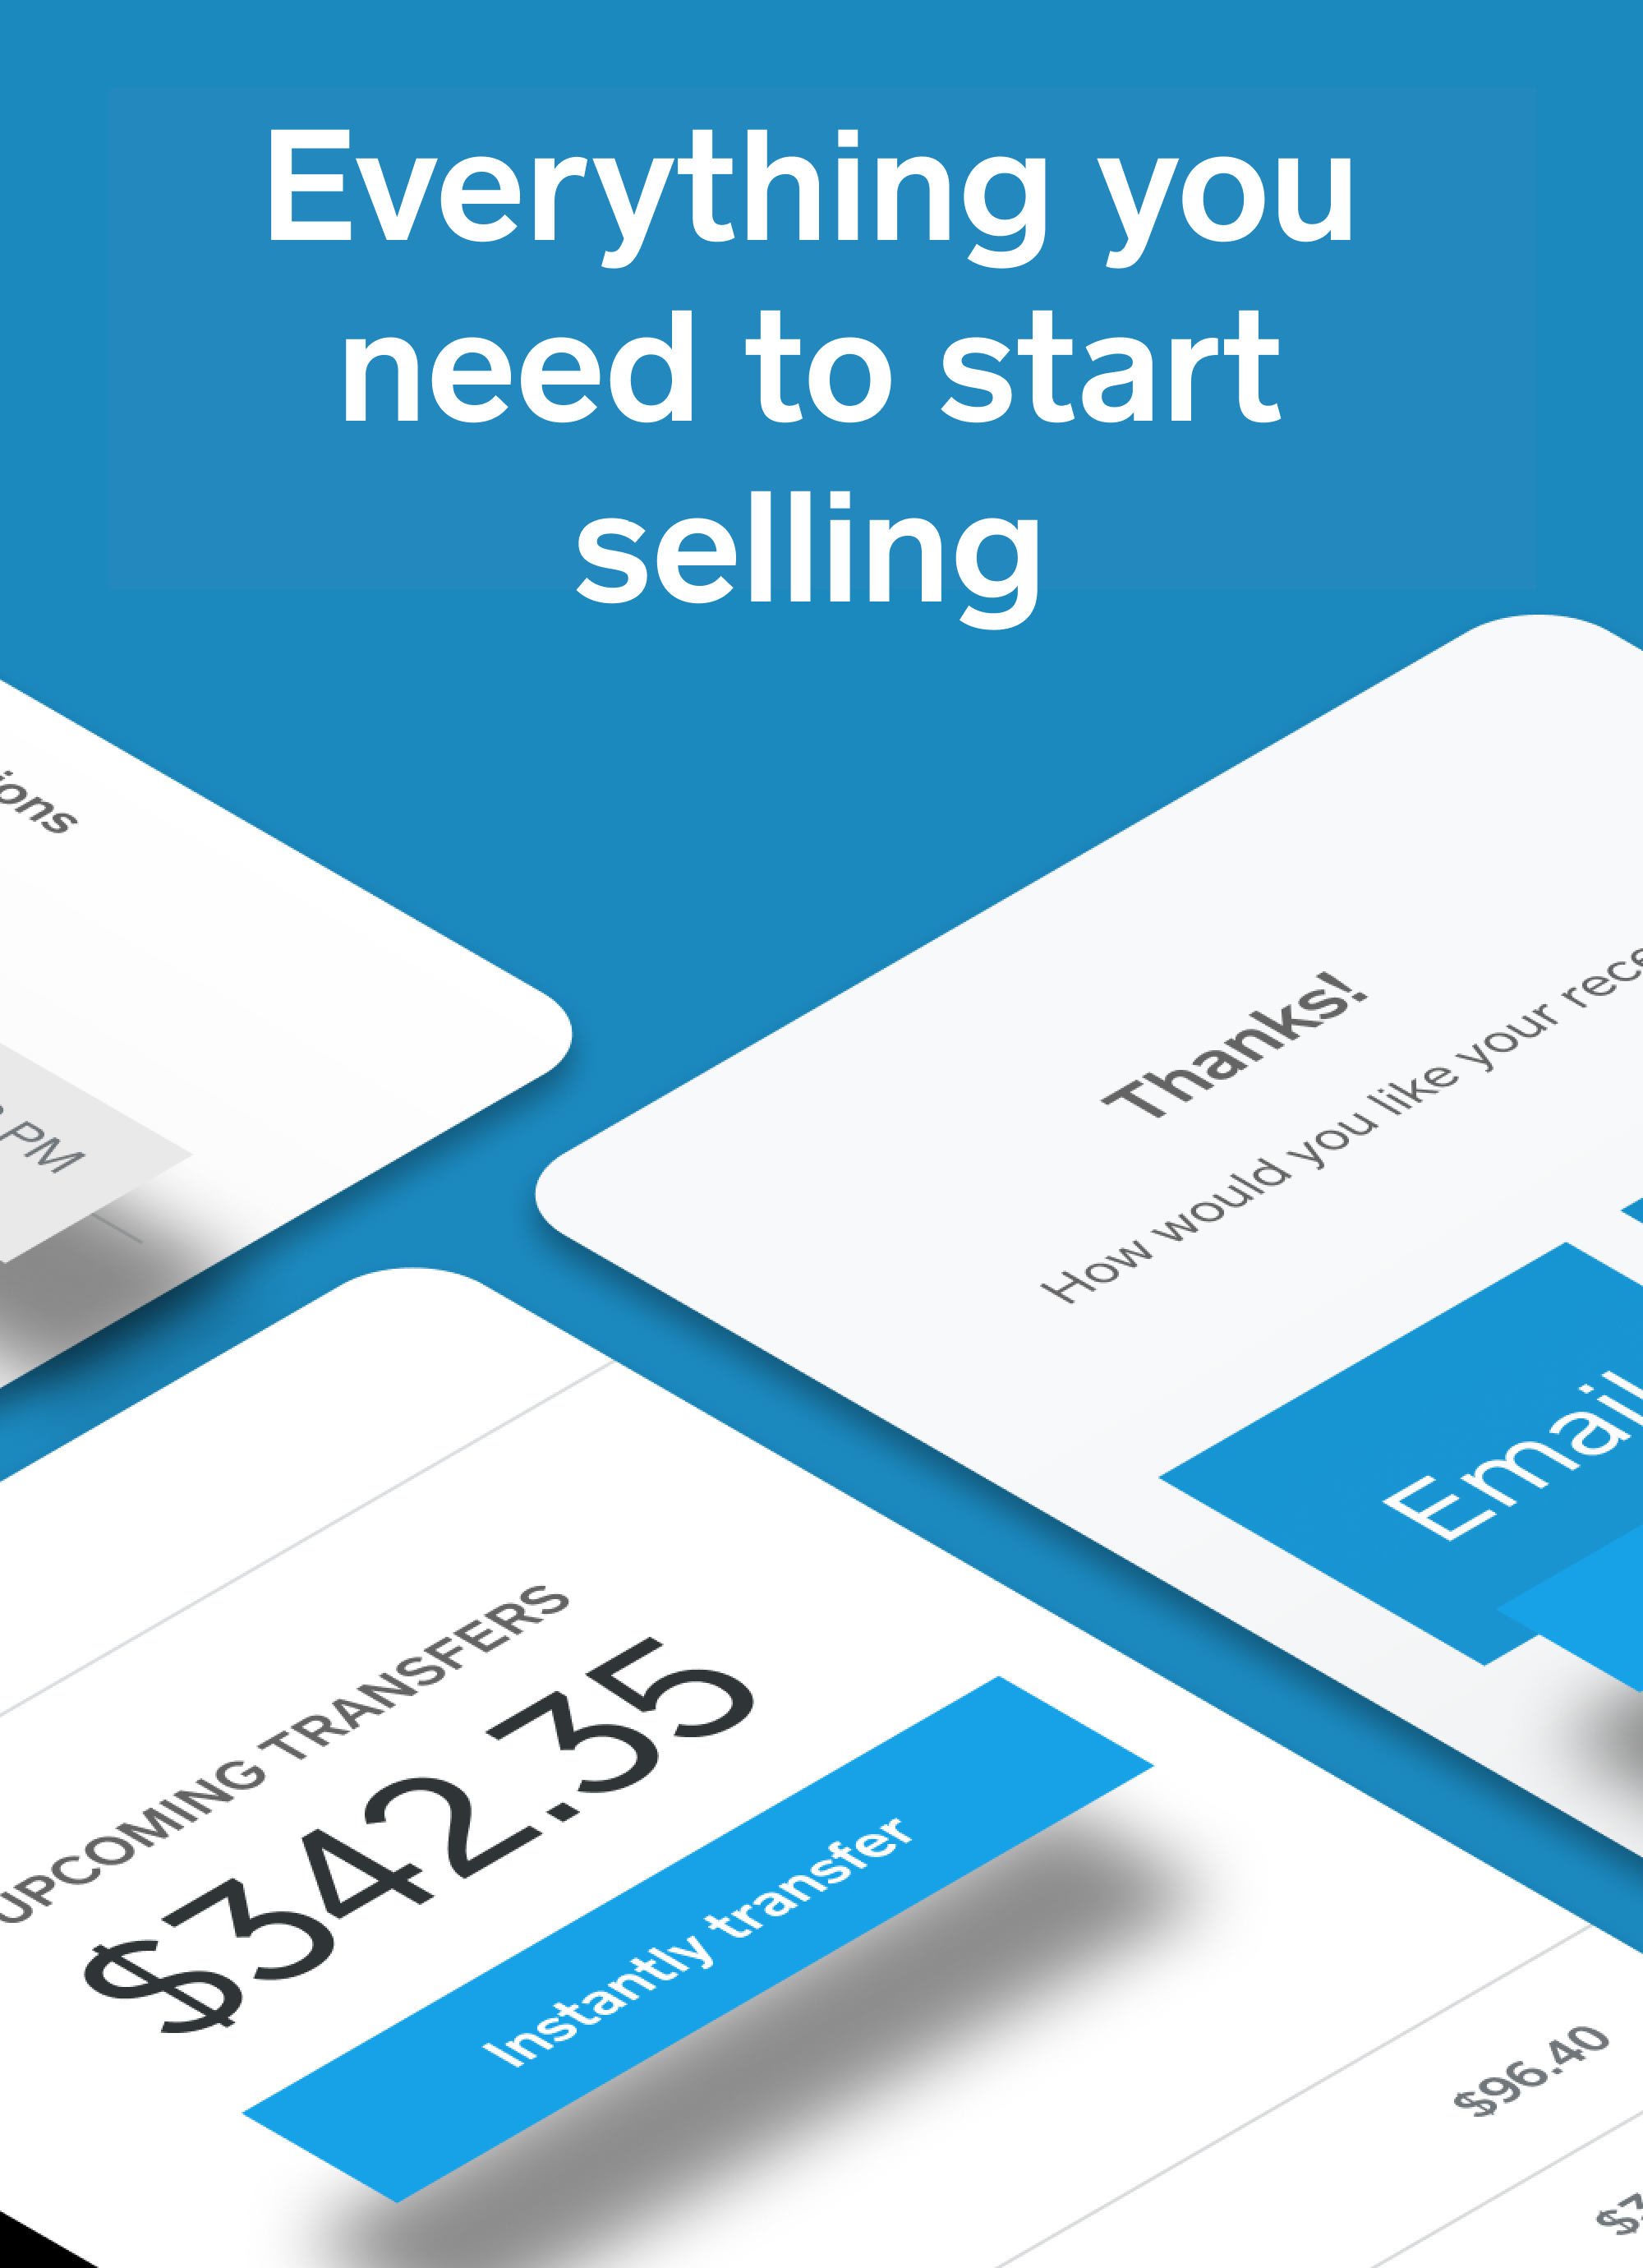 Everything you need to start selling